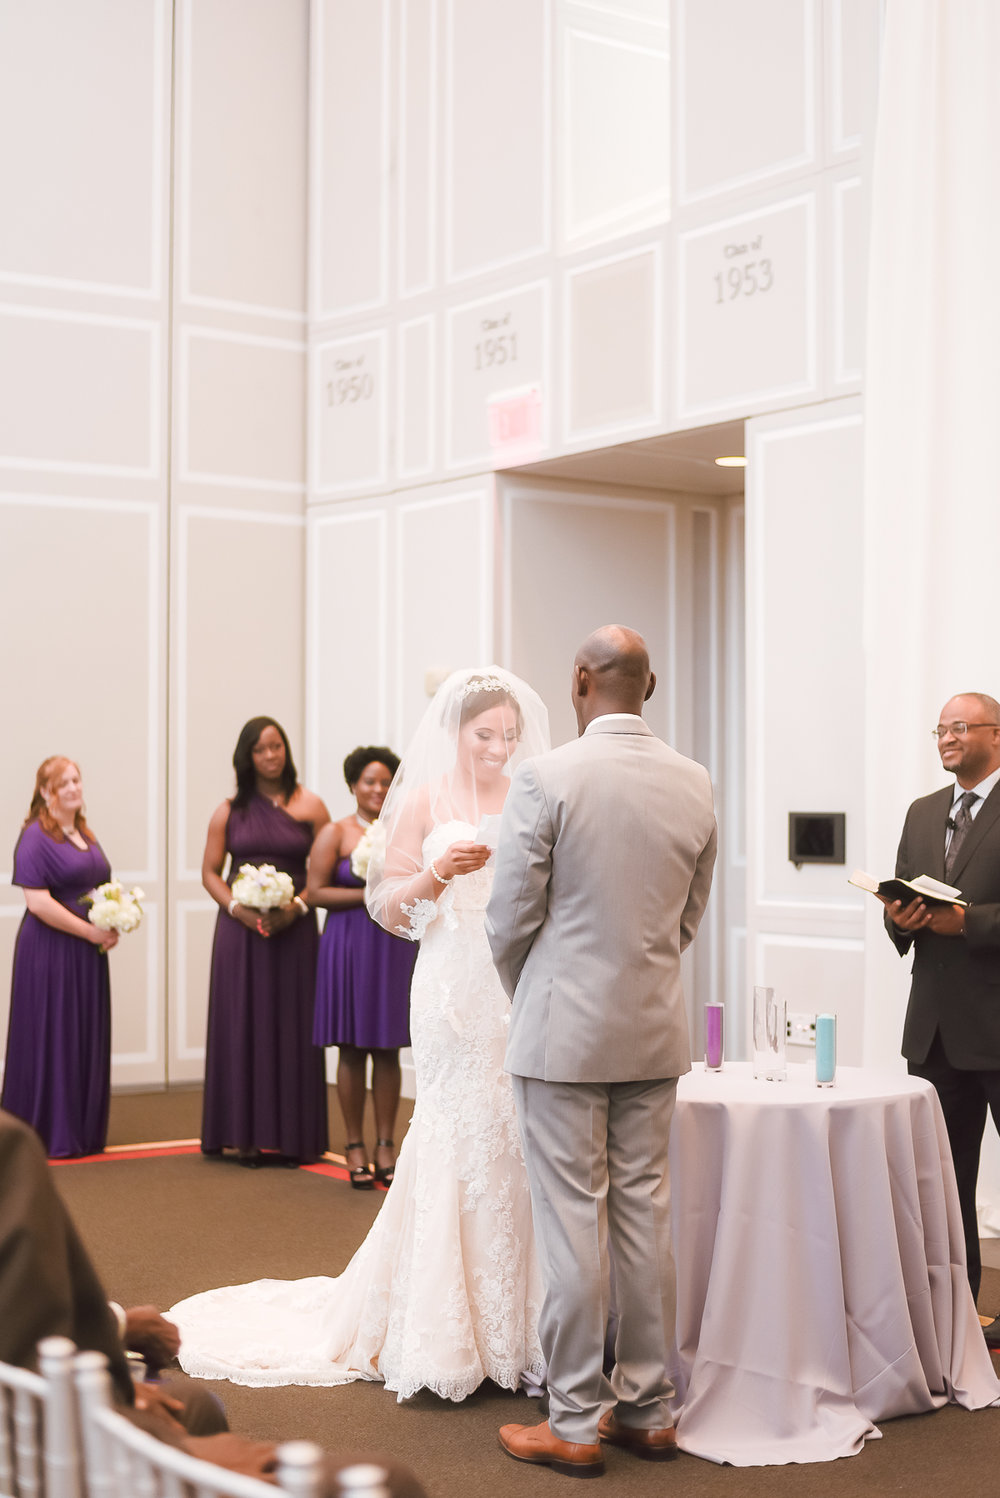 MD-Riggs-Center-Wedding-Purple-Bride-Groom-20